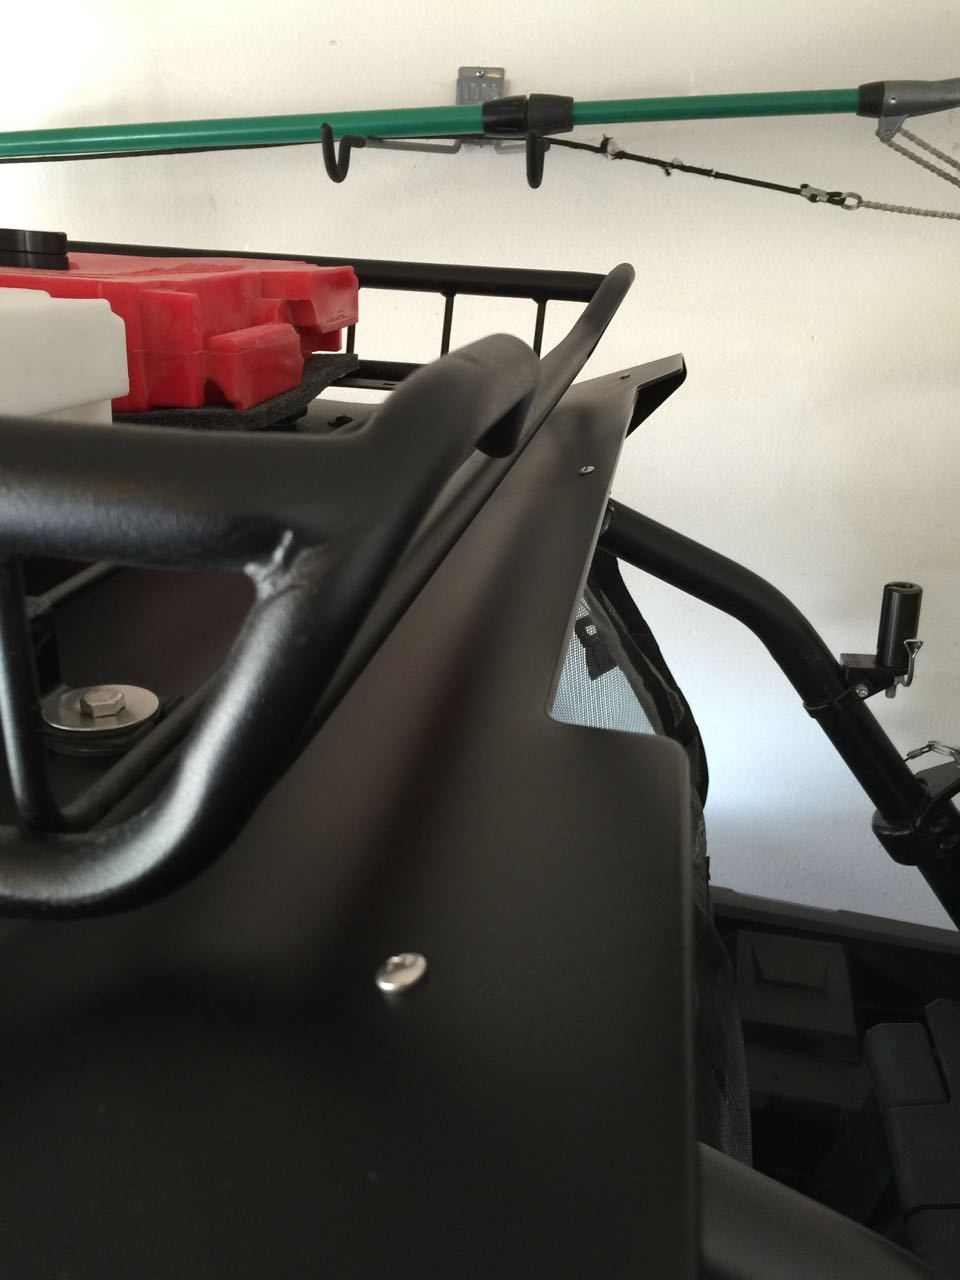 Xp 4 1000 Roof Which One To Choose Page 2 Polaris Rzr